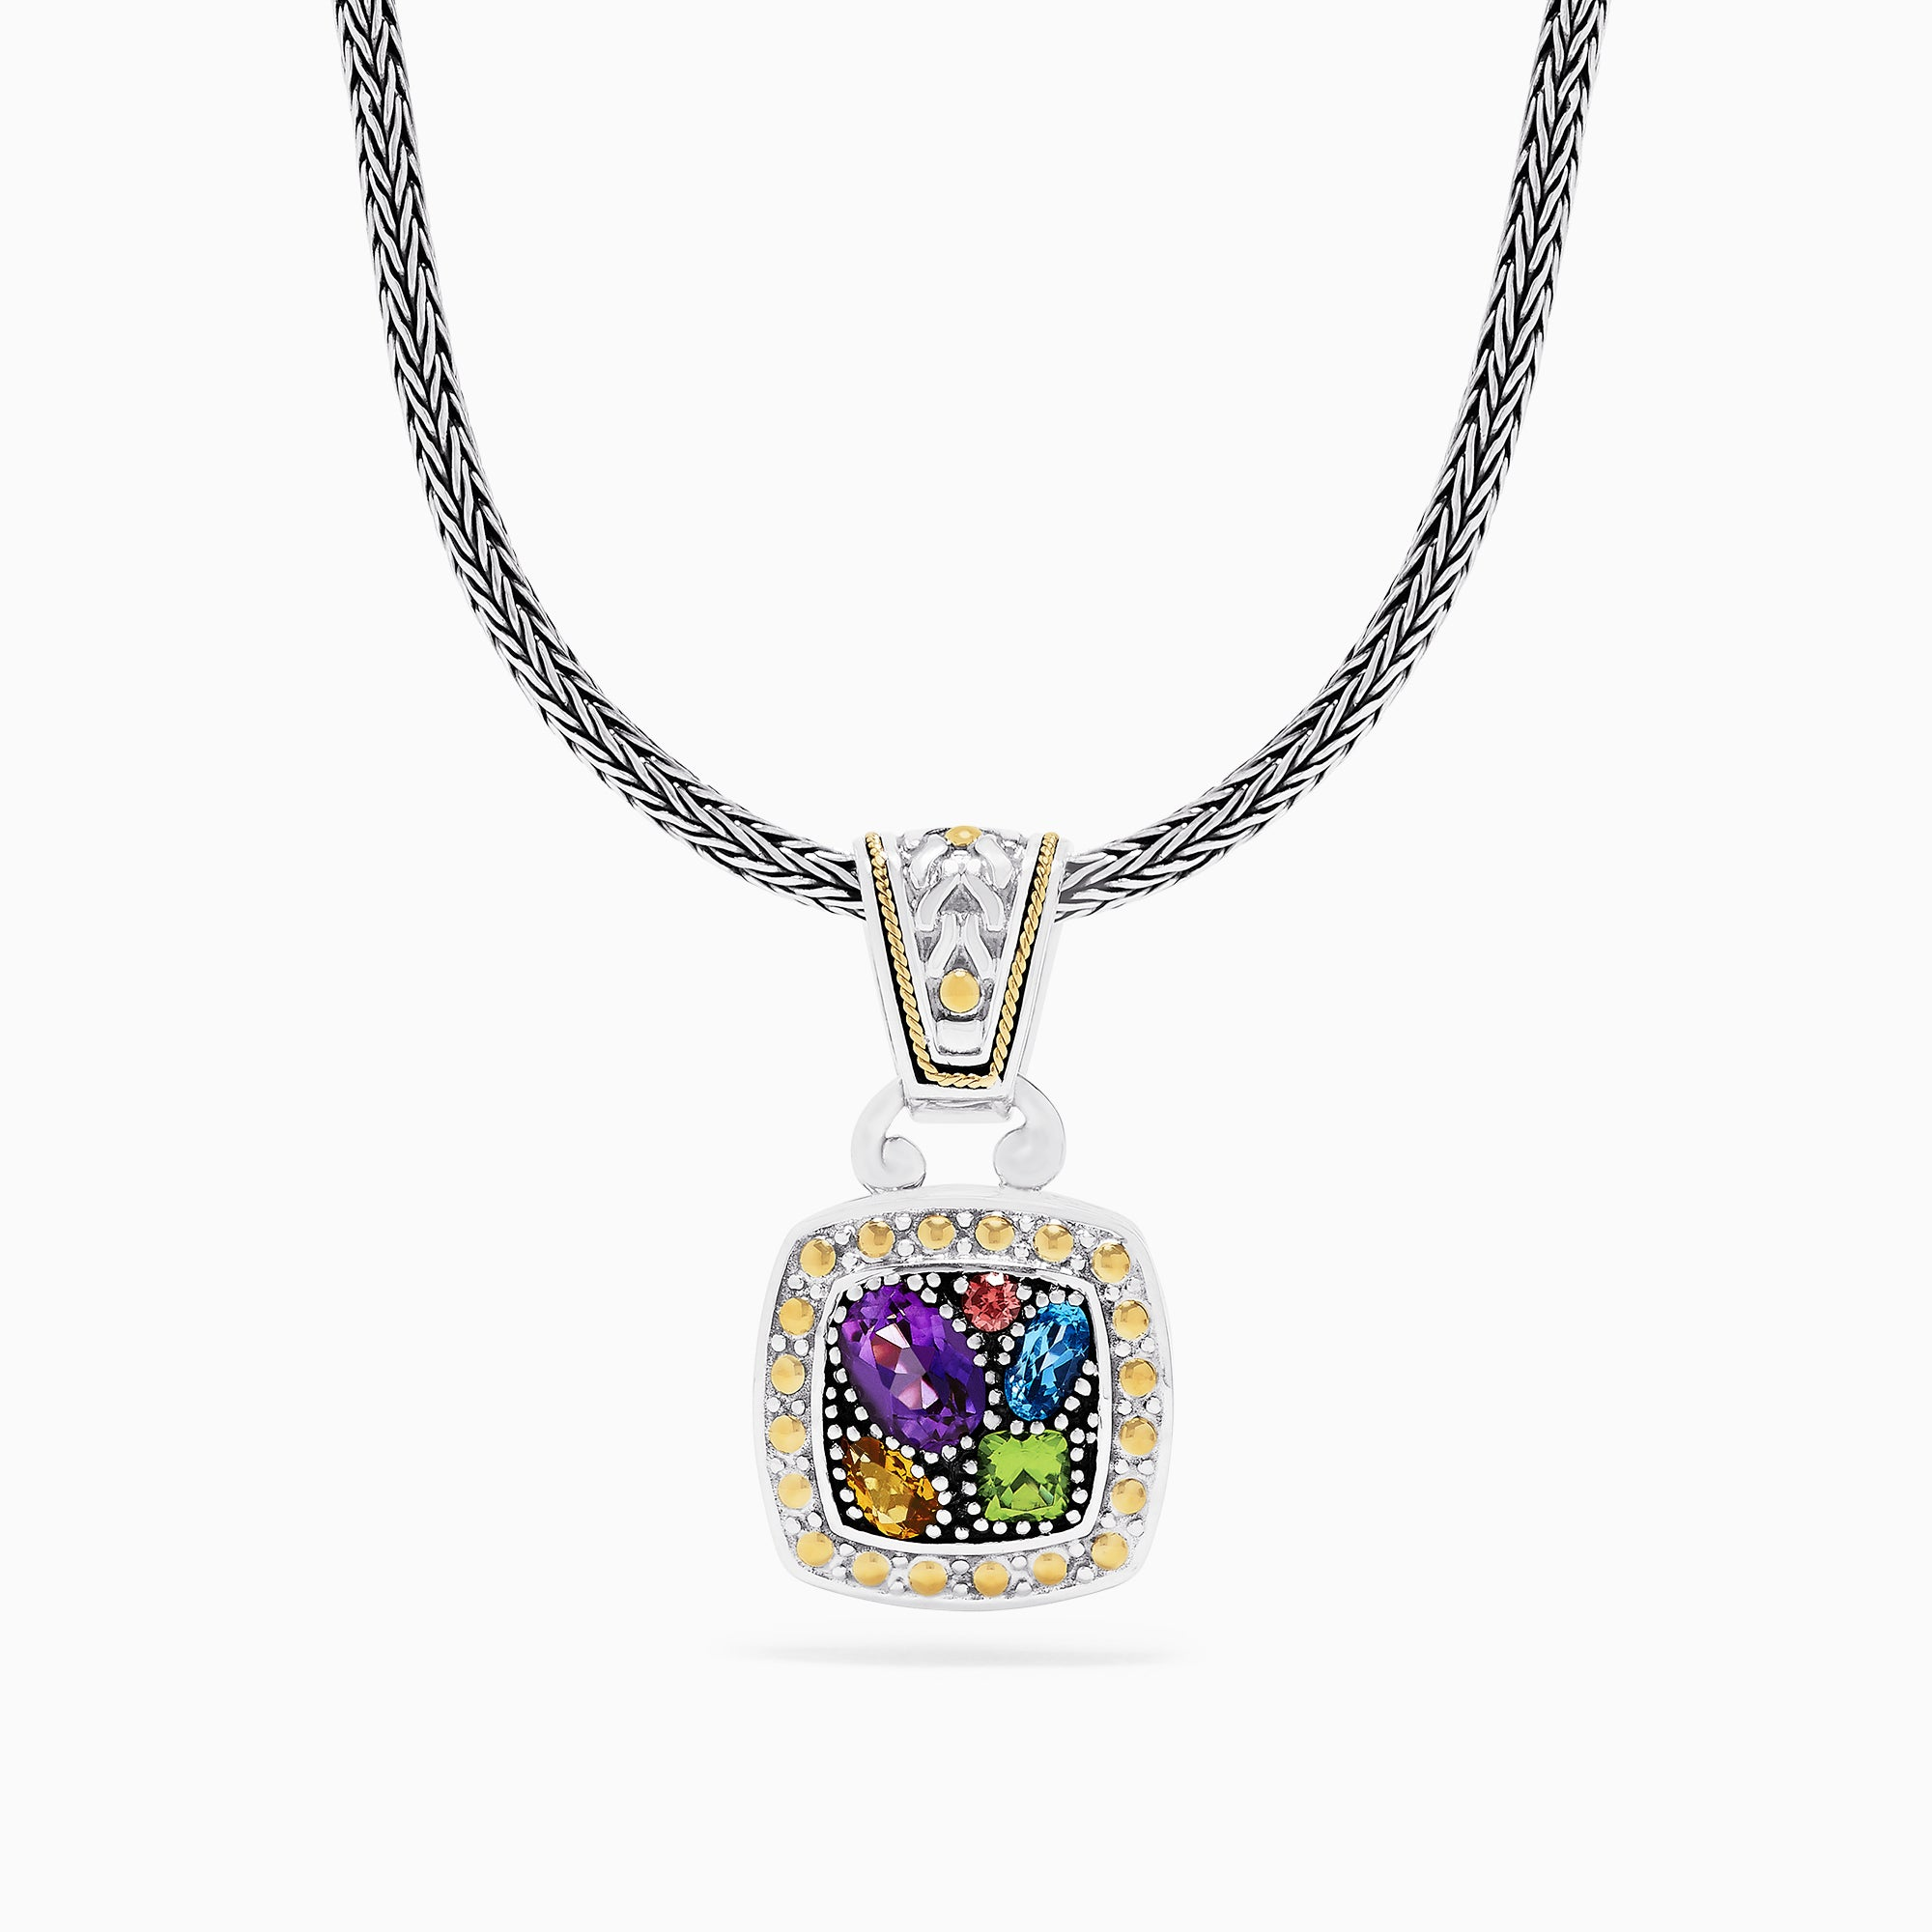 Effy 925 Sterling Silver & 18K Gold Accent Multi Gemstone Pendant, 1.59 TCW